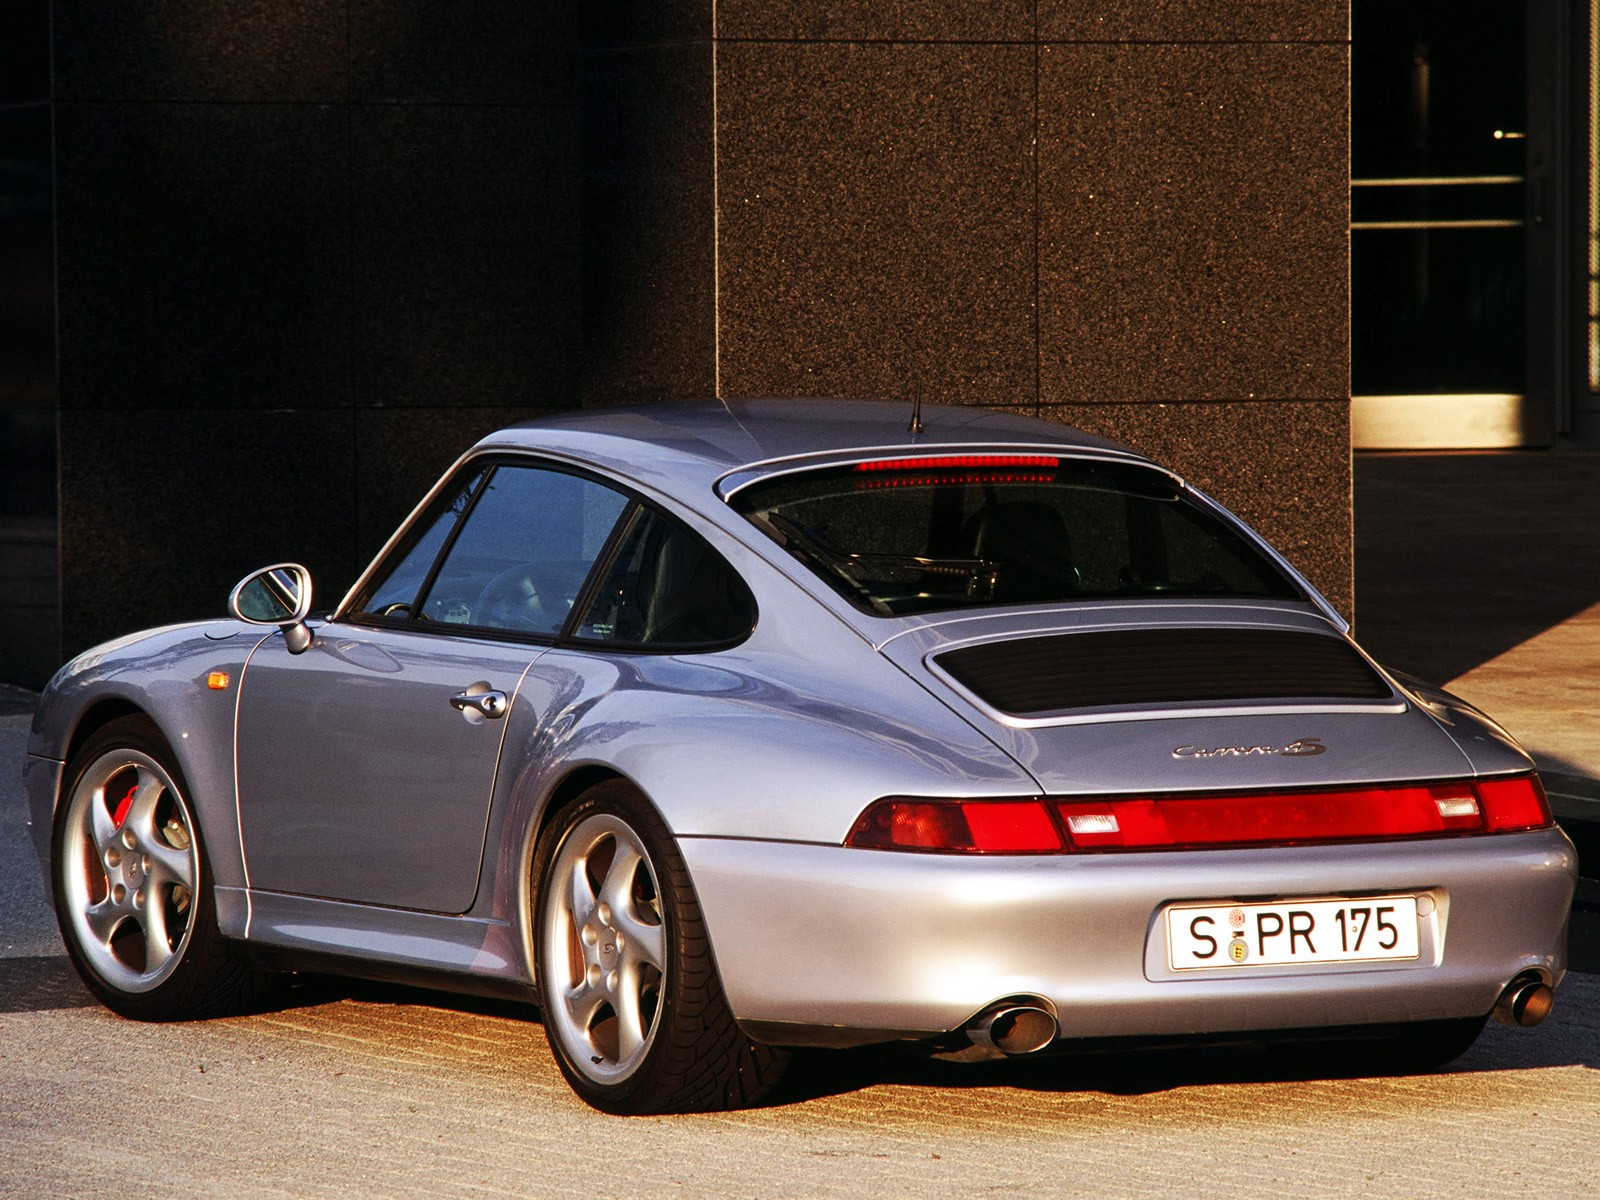 porsche 911 carrera 4s 993 specs 1995 1996 1997 1998 autoevolution. Black Bedroom Furniture Sets. Home Design Ideas